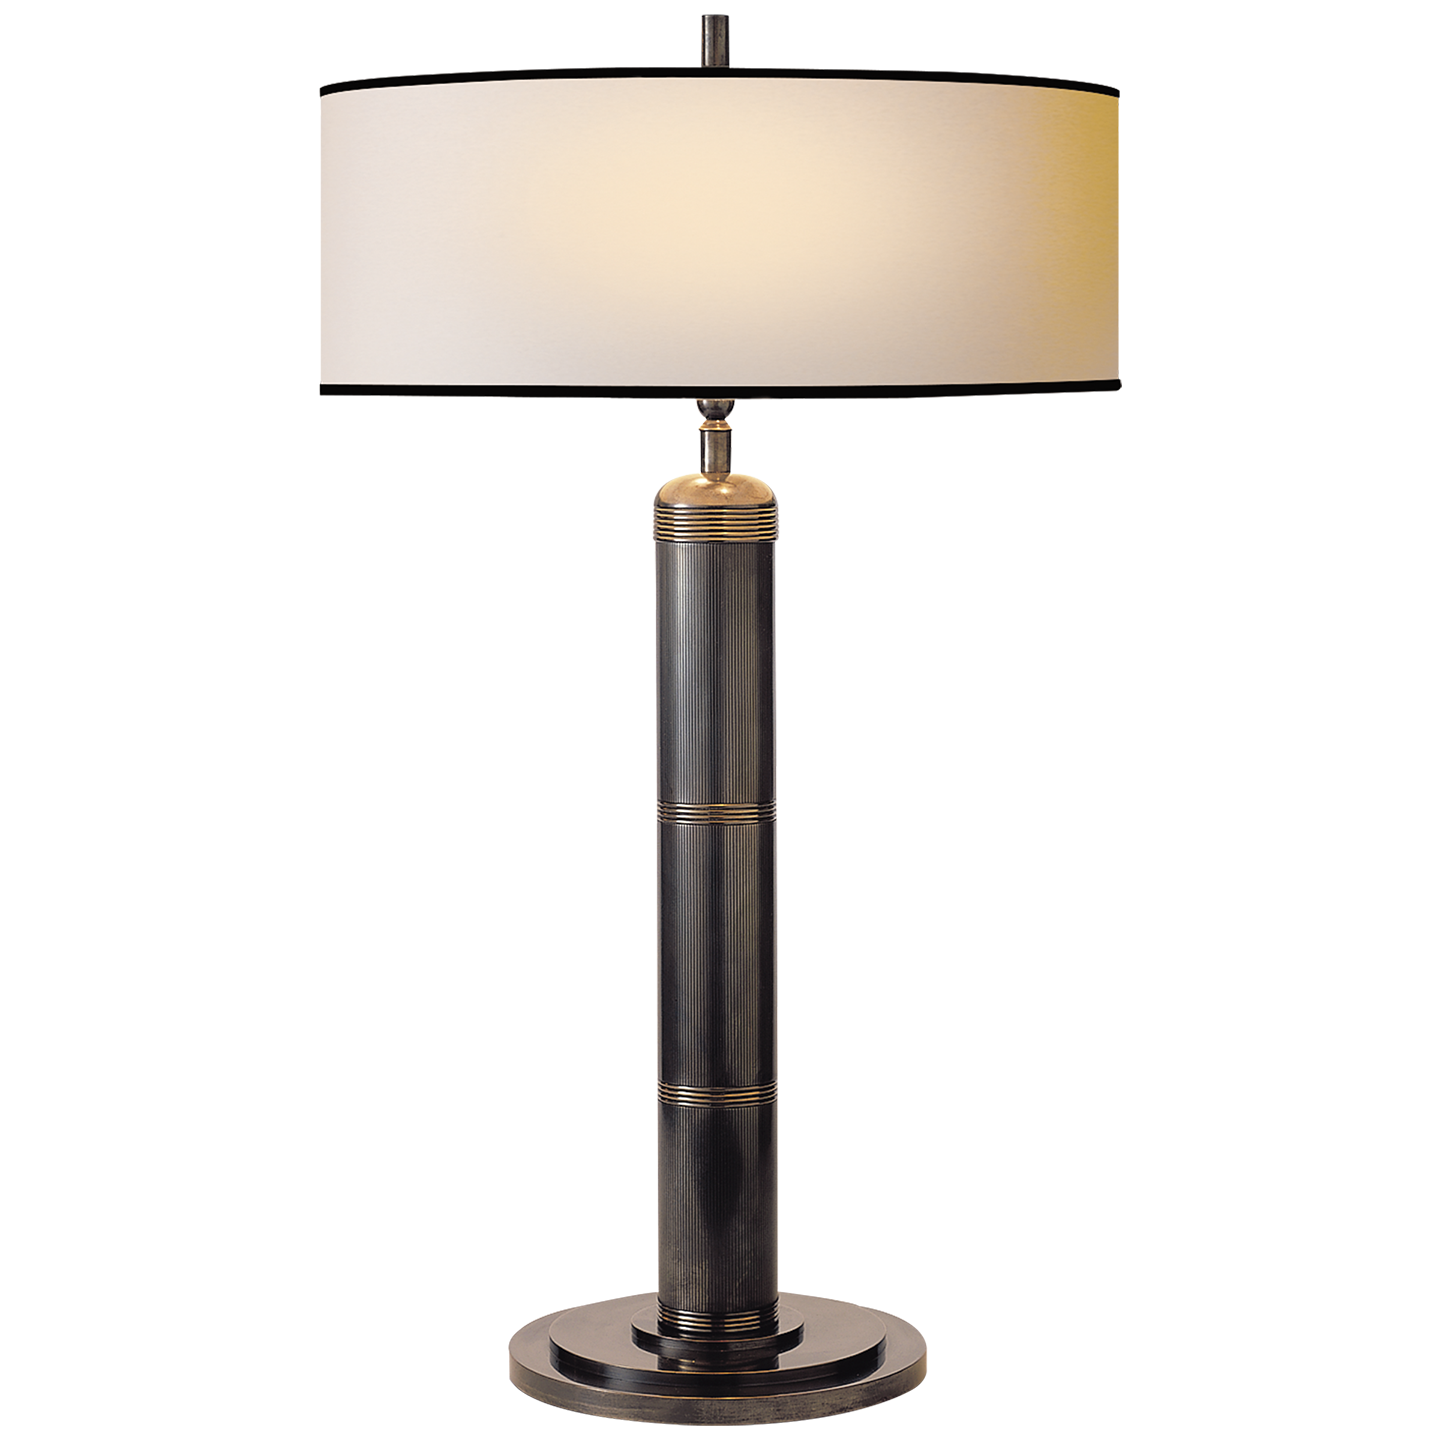 Longacre tall table lamp in bronze with natural paper shade and longacre tall table lamp in bronze with natural paper shade and black trim geotapseo Gallery